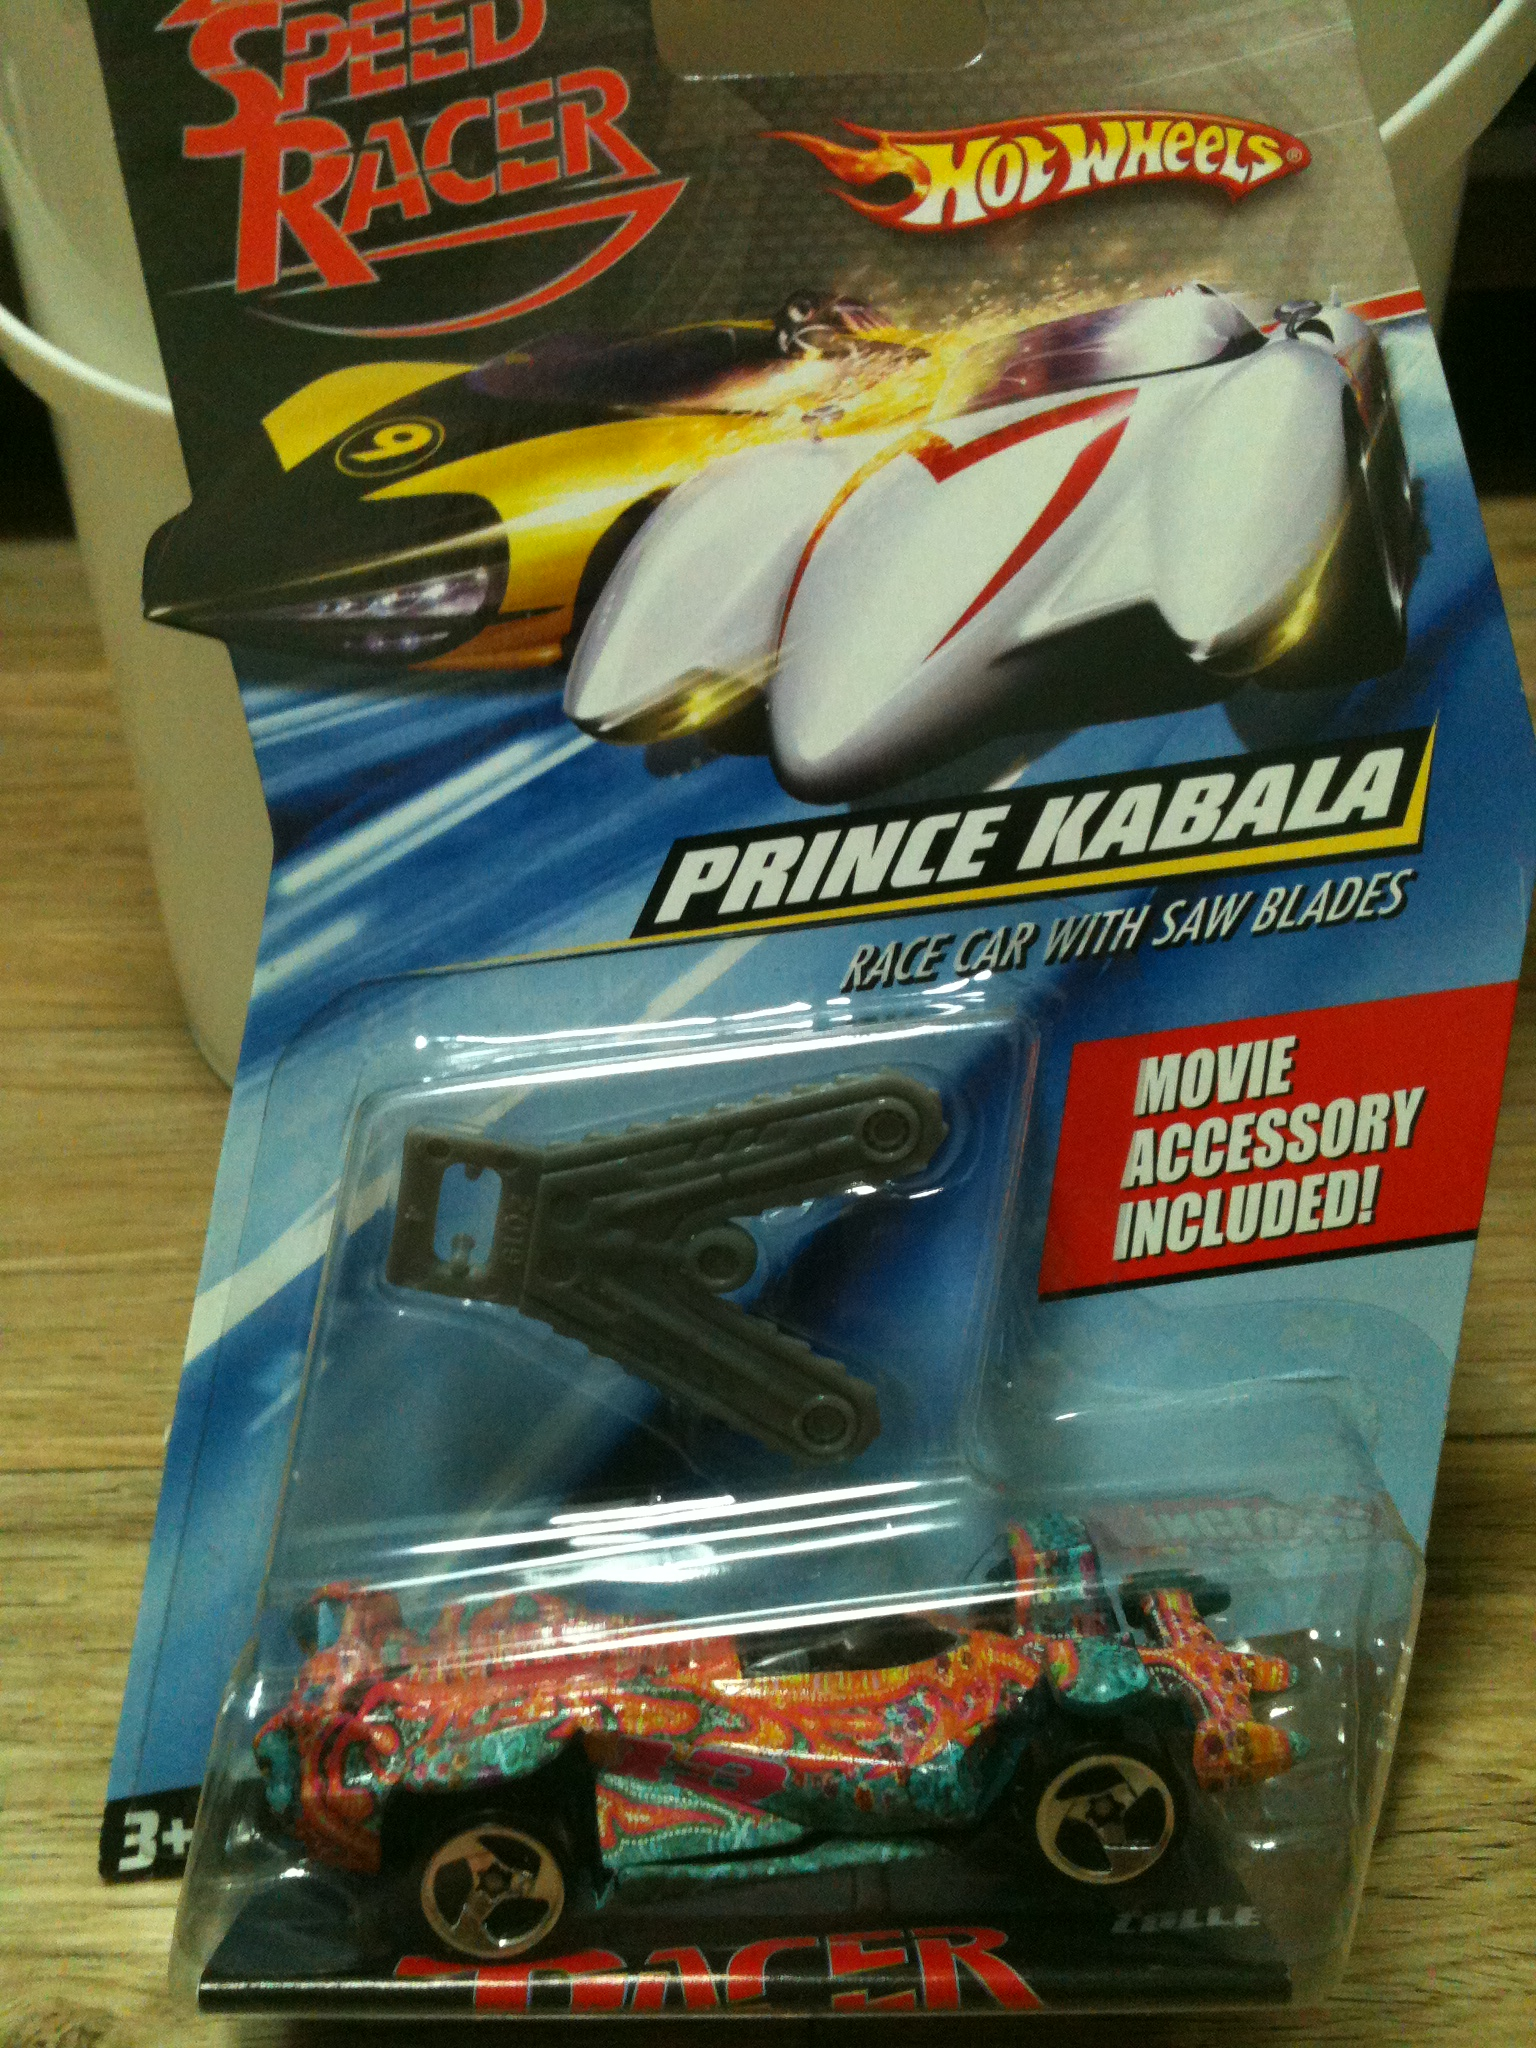 Speed racer - Prince Kabala - Race Car with..